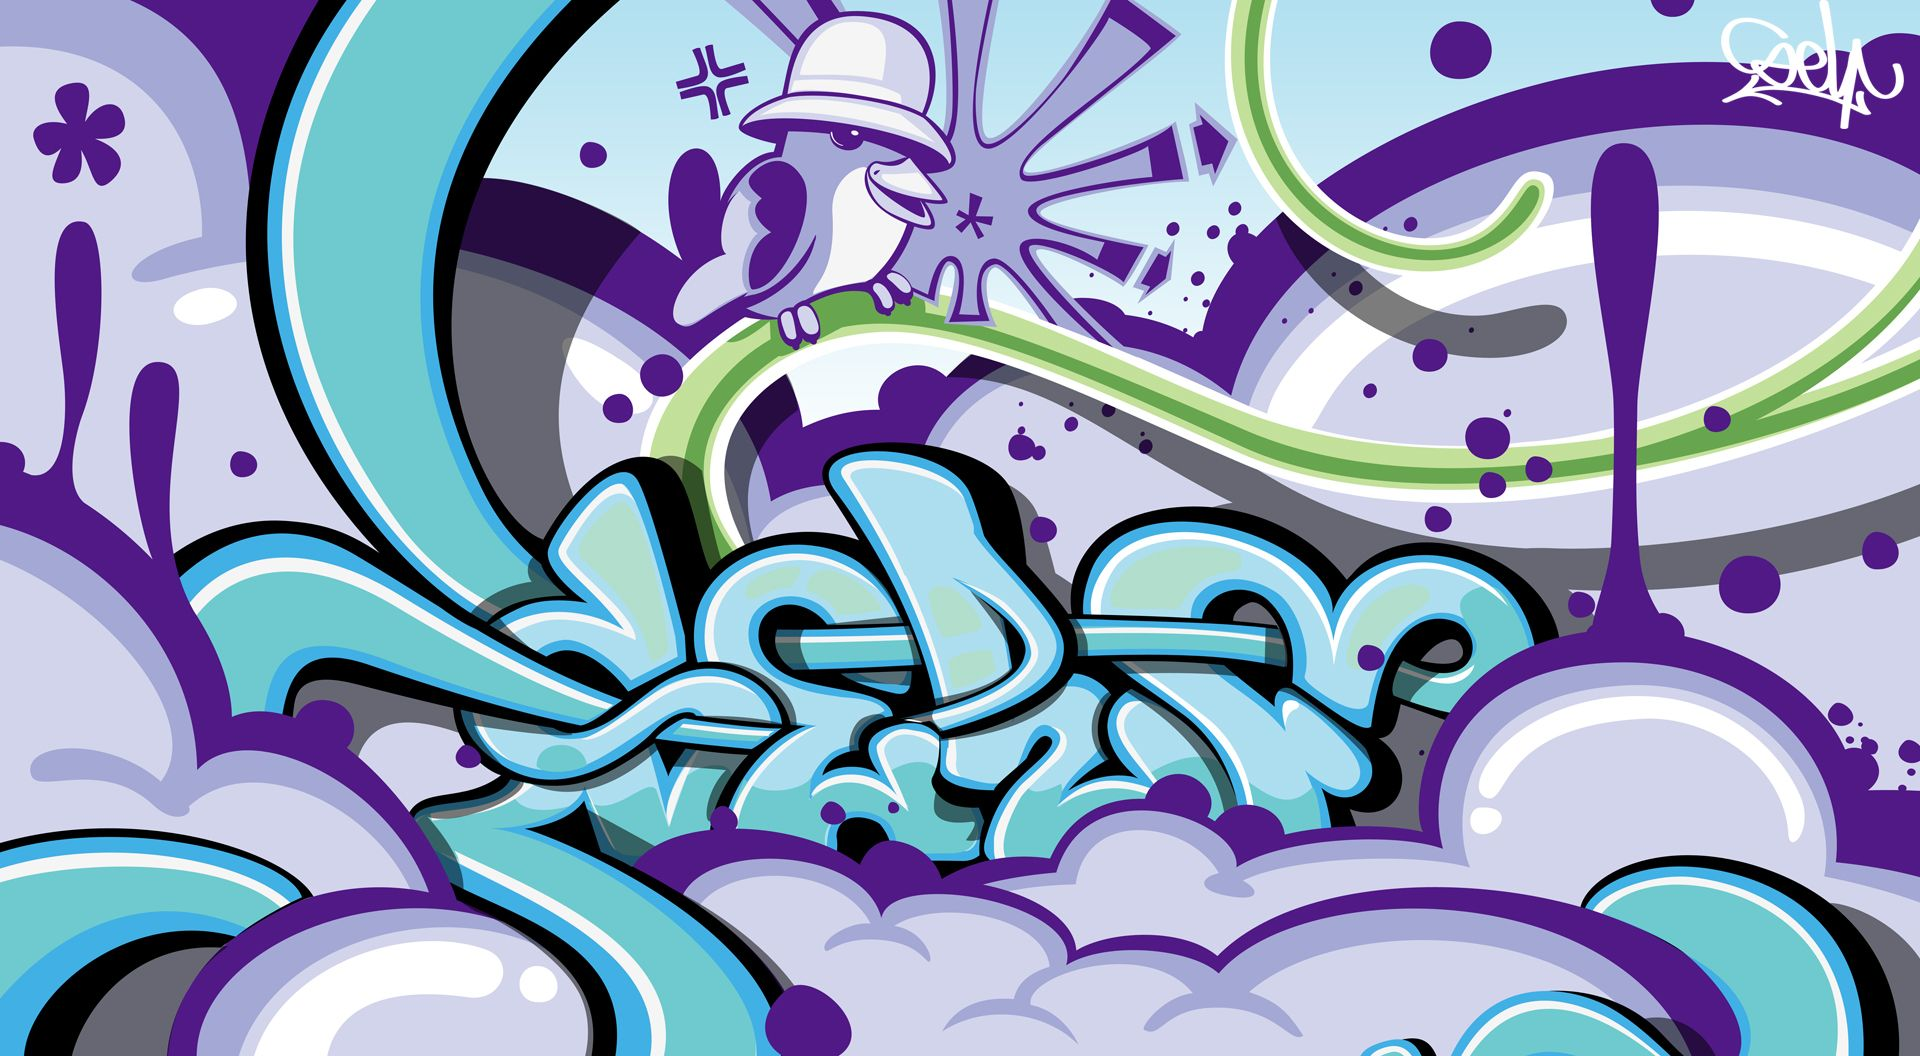 Graffiti wallpapers purple chirper in an old school kangol for Graffiti wallpaper